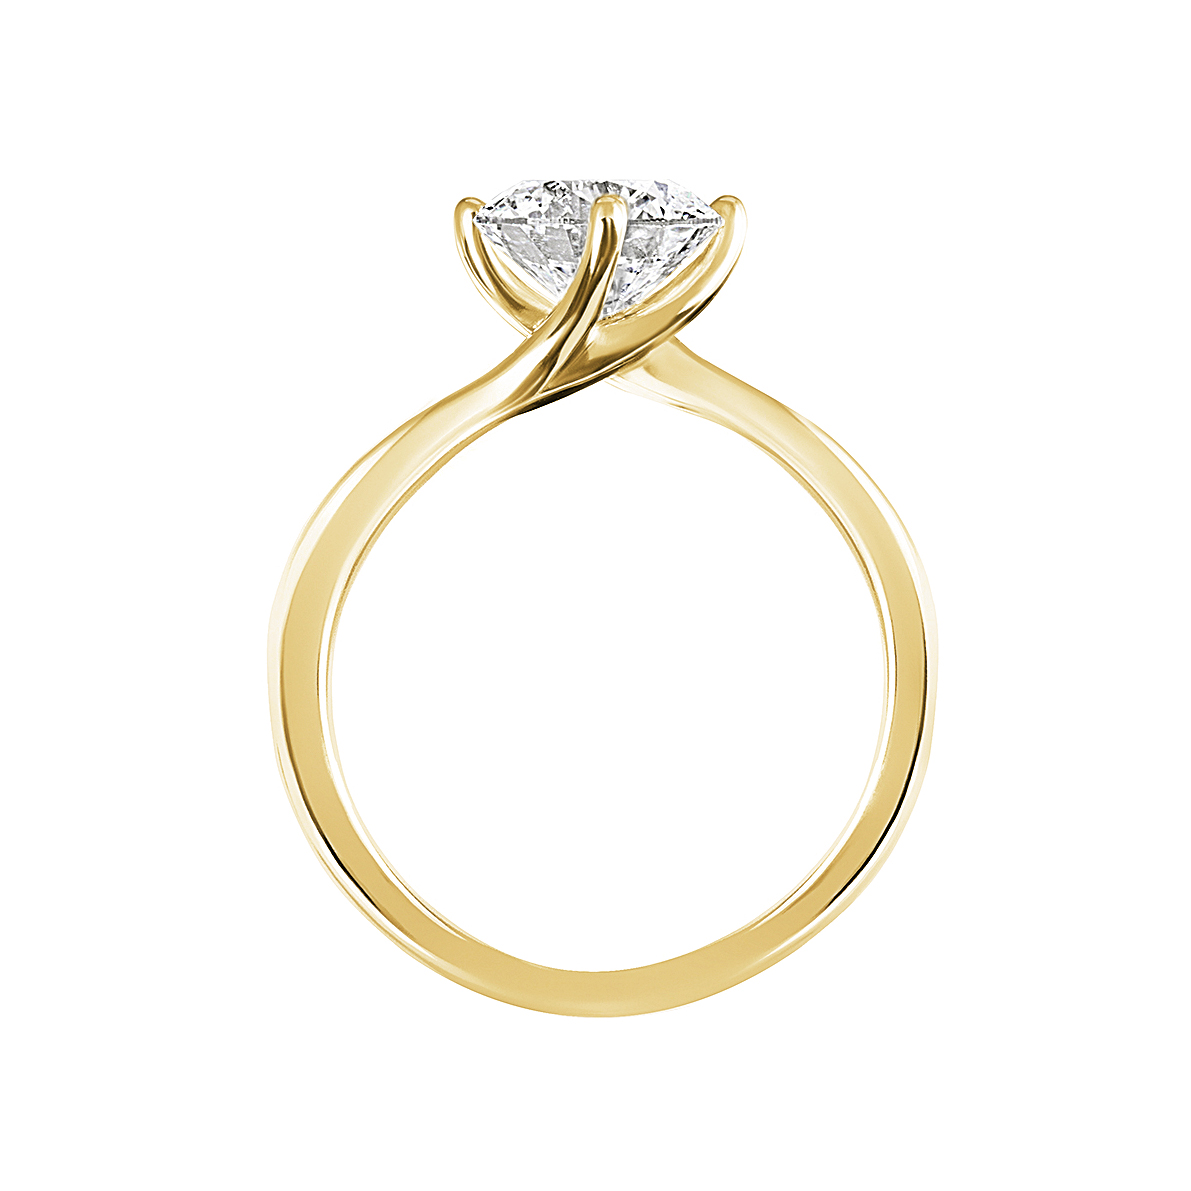 Grace-yellow-gold-solitaire-diamond-engagement-ring-profile.jpg